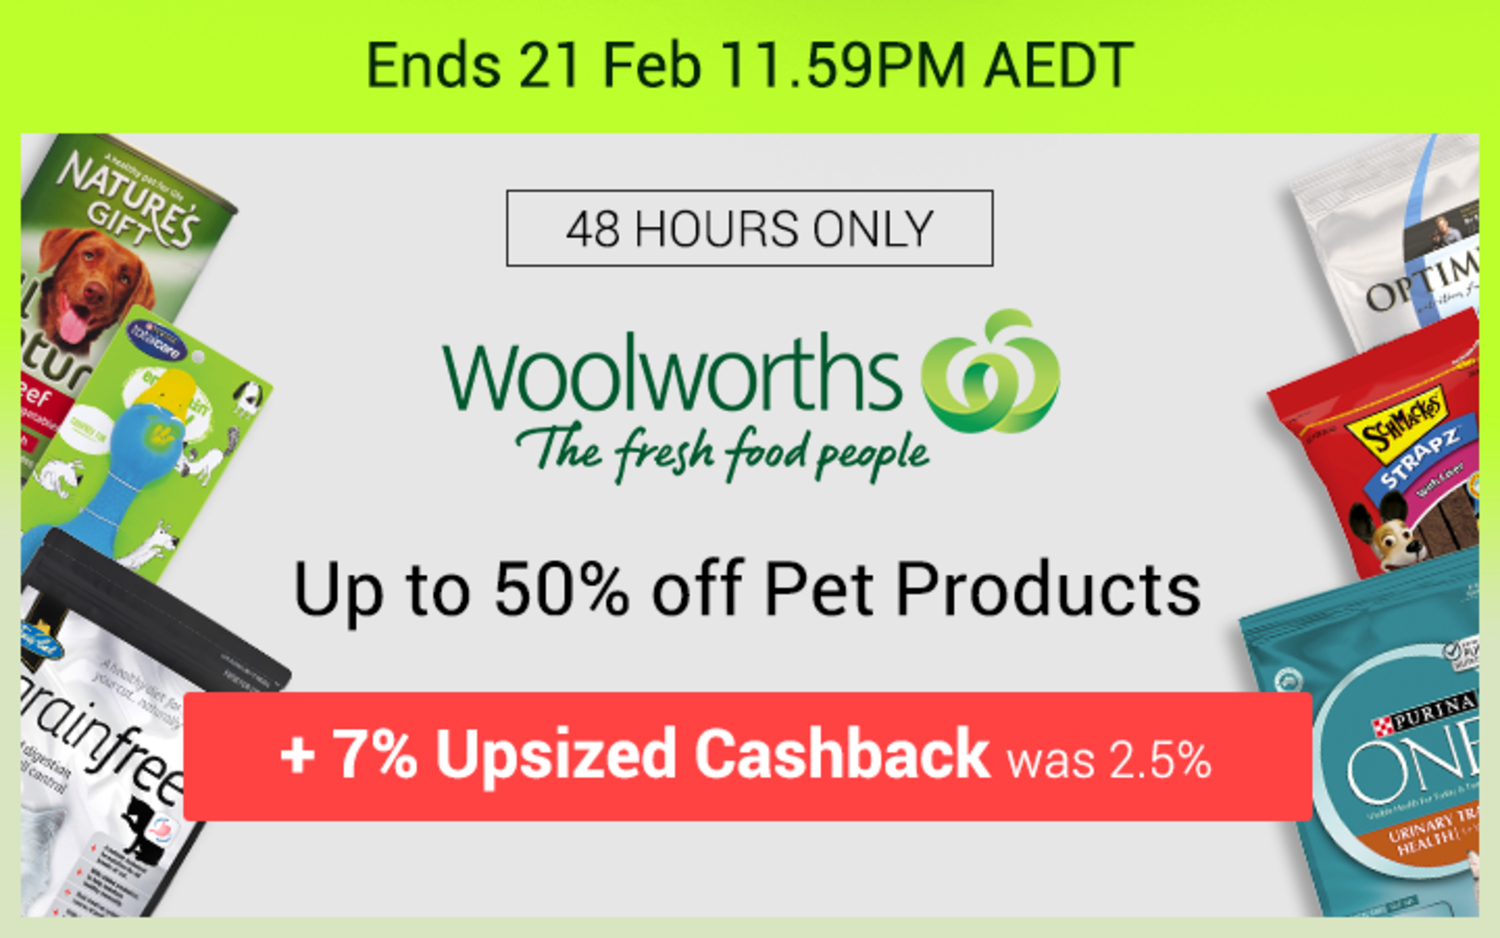 Woolworths - 7% Upsized Cashback Pet Event, Part 1 of 2